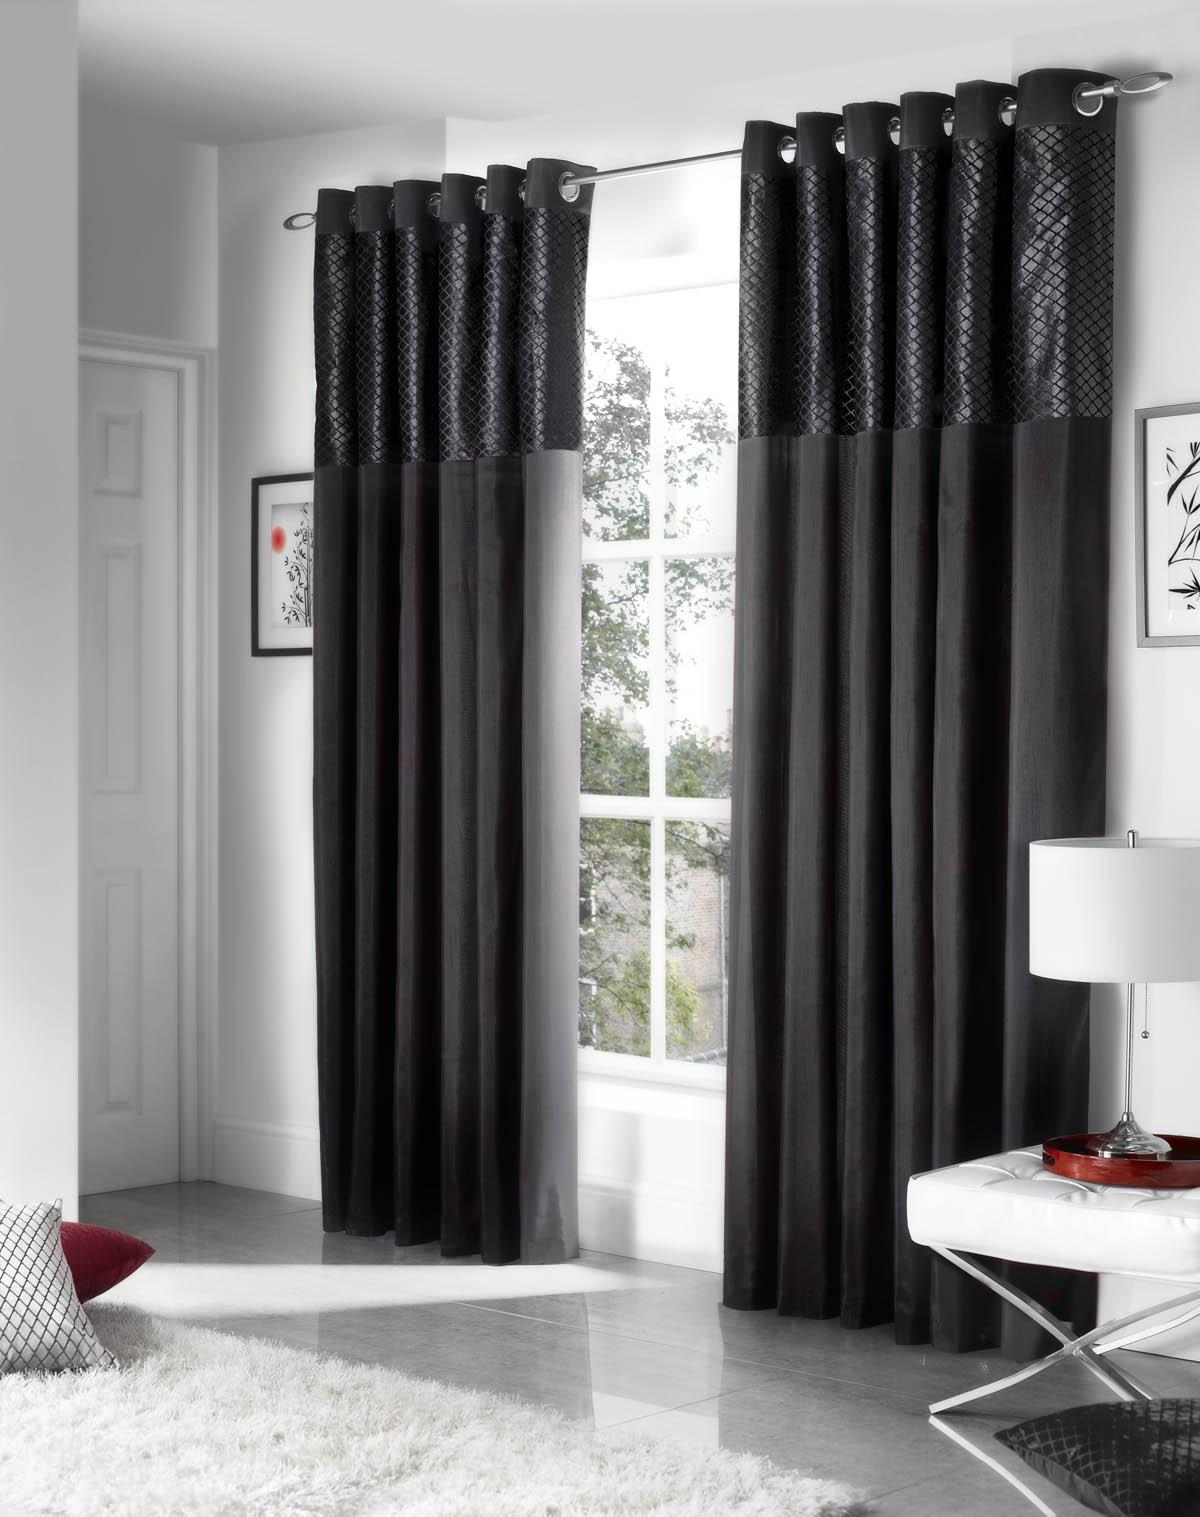 savoy ready made eyelet curtains fully lined black. Black Bedroom Furniture Sets. Home Design Ideas